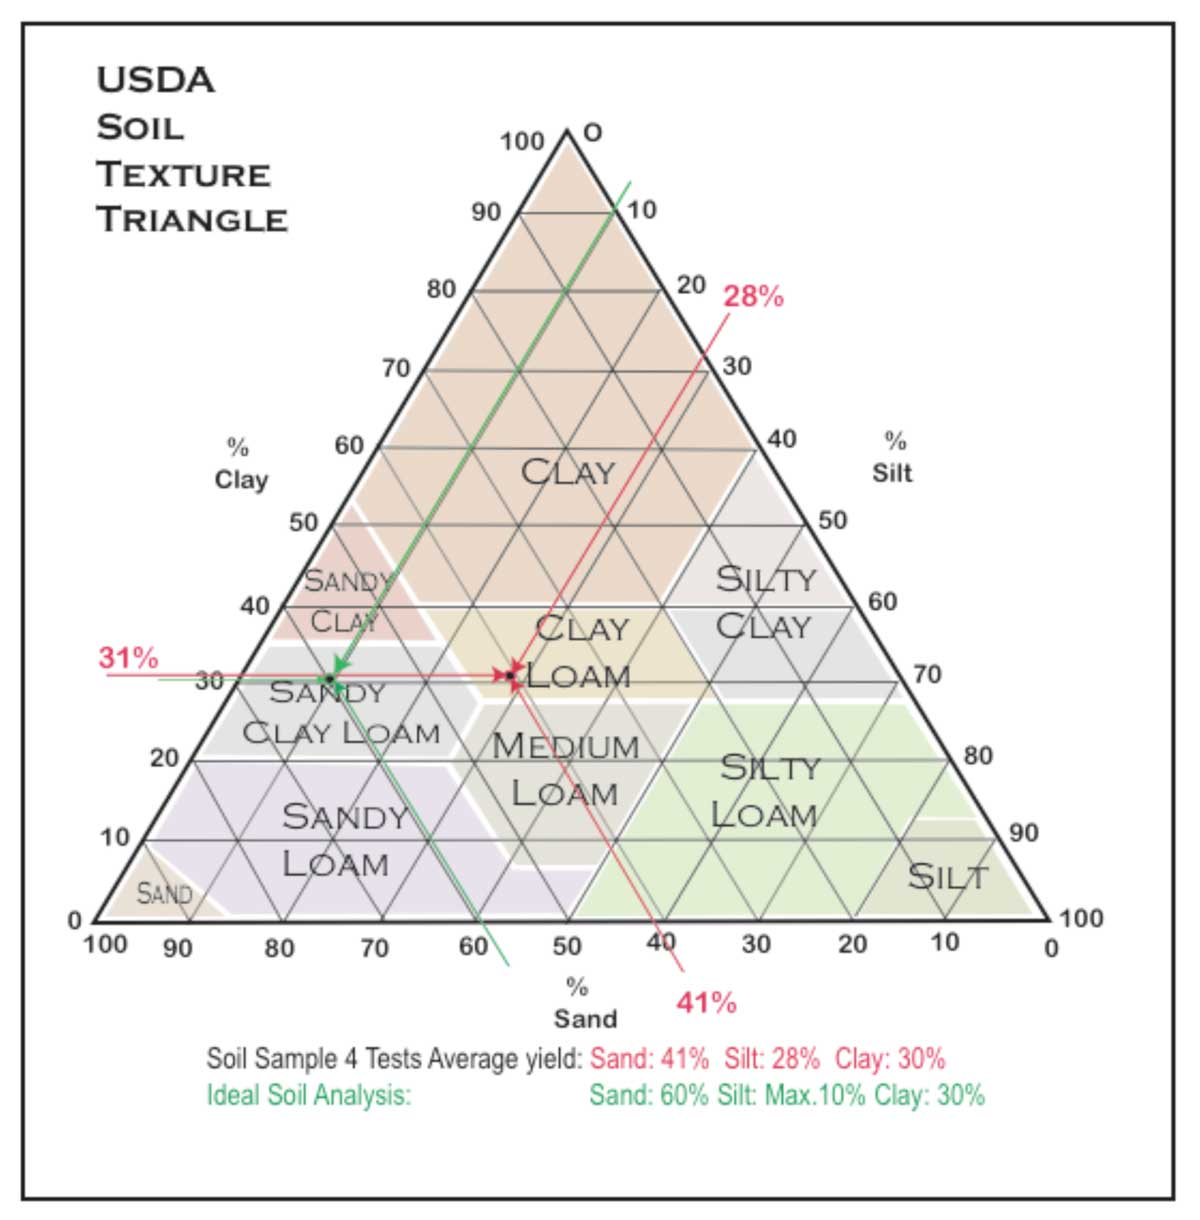 Soil textural triangle nrcs bing images for Soil triangle